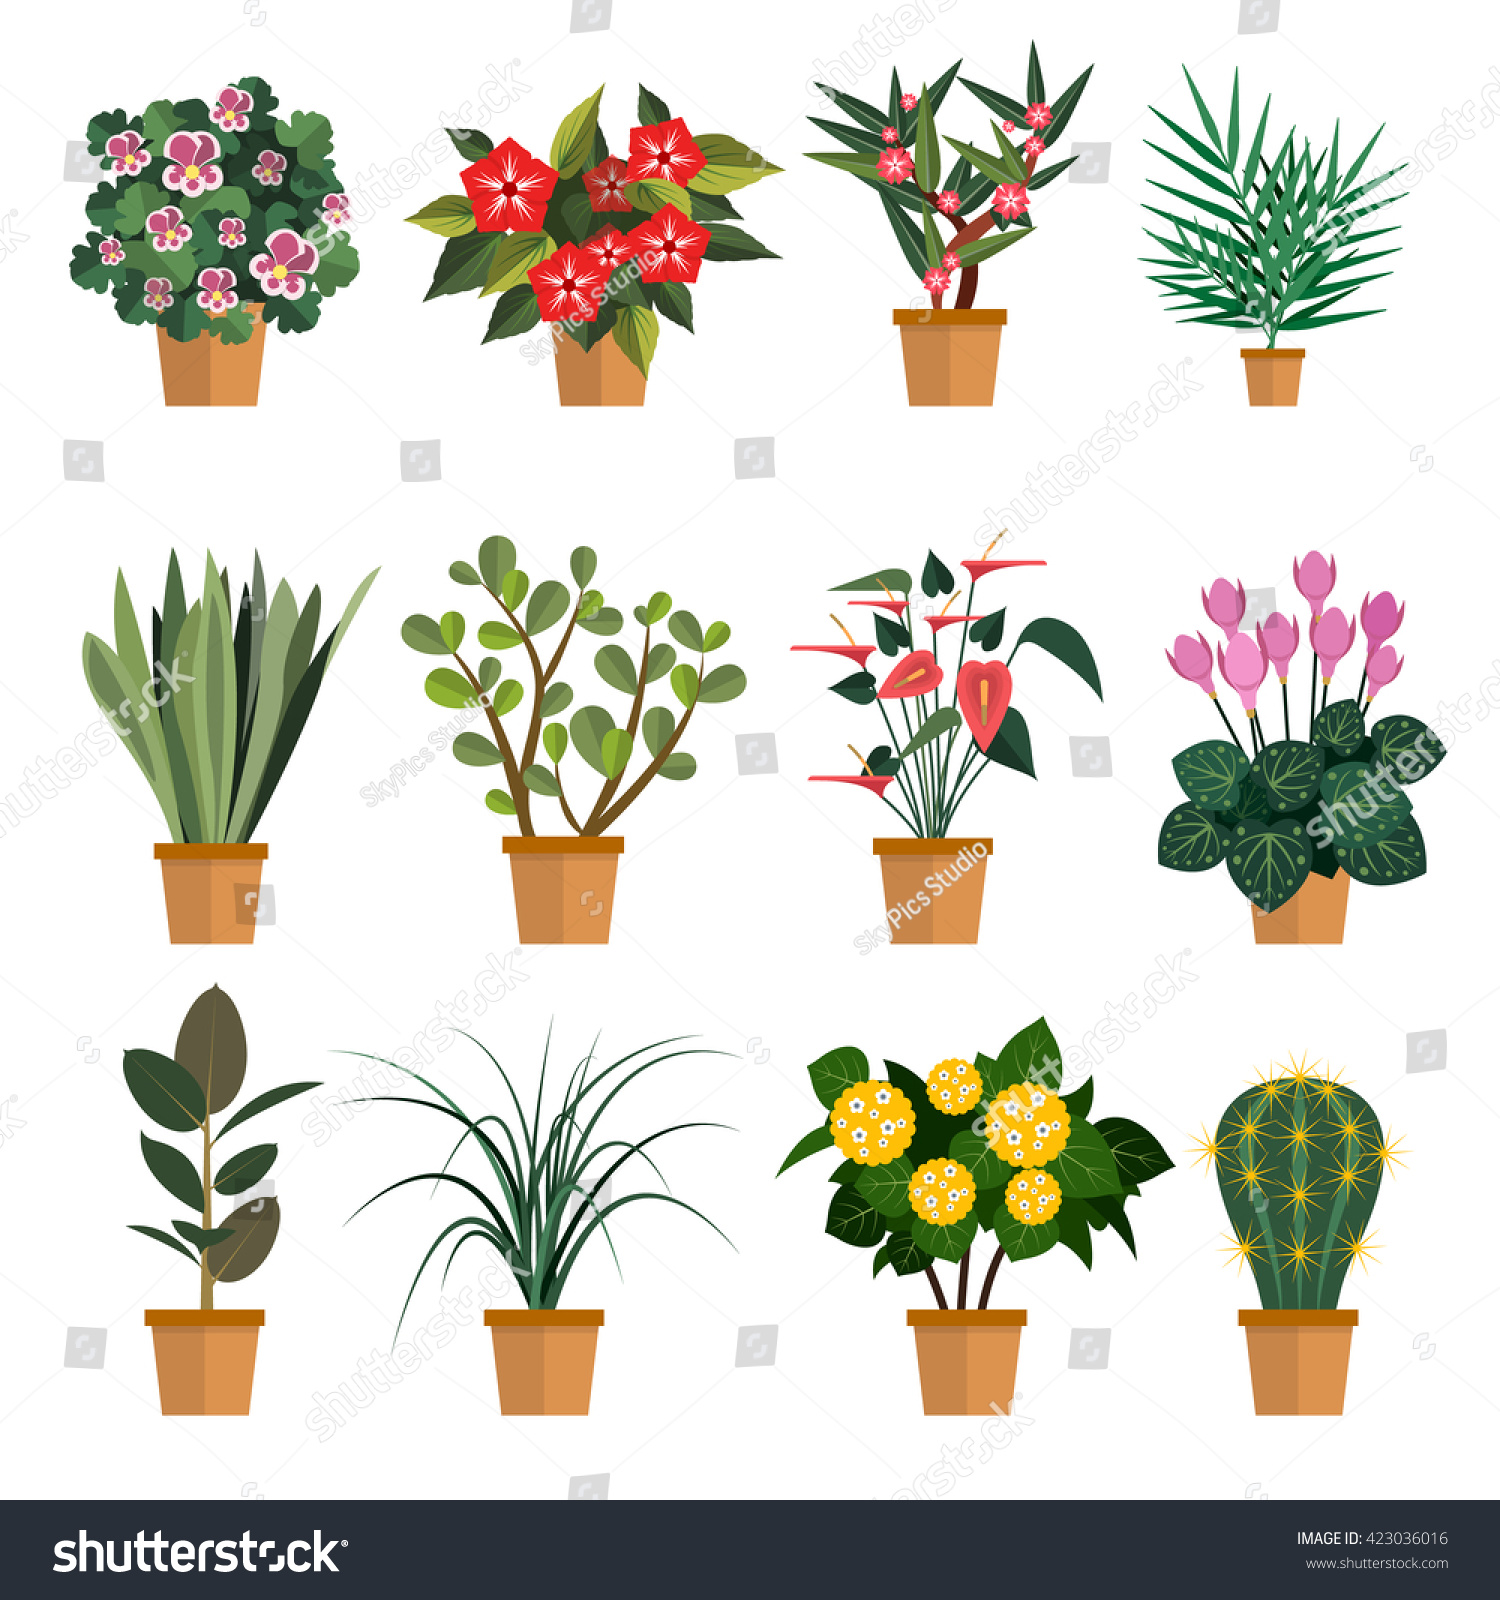 Vector Set Flowers Illustration Different Types Stock Vector